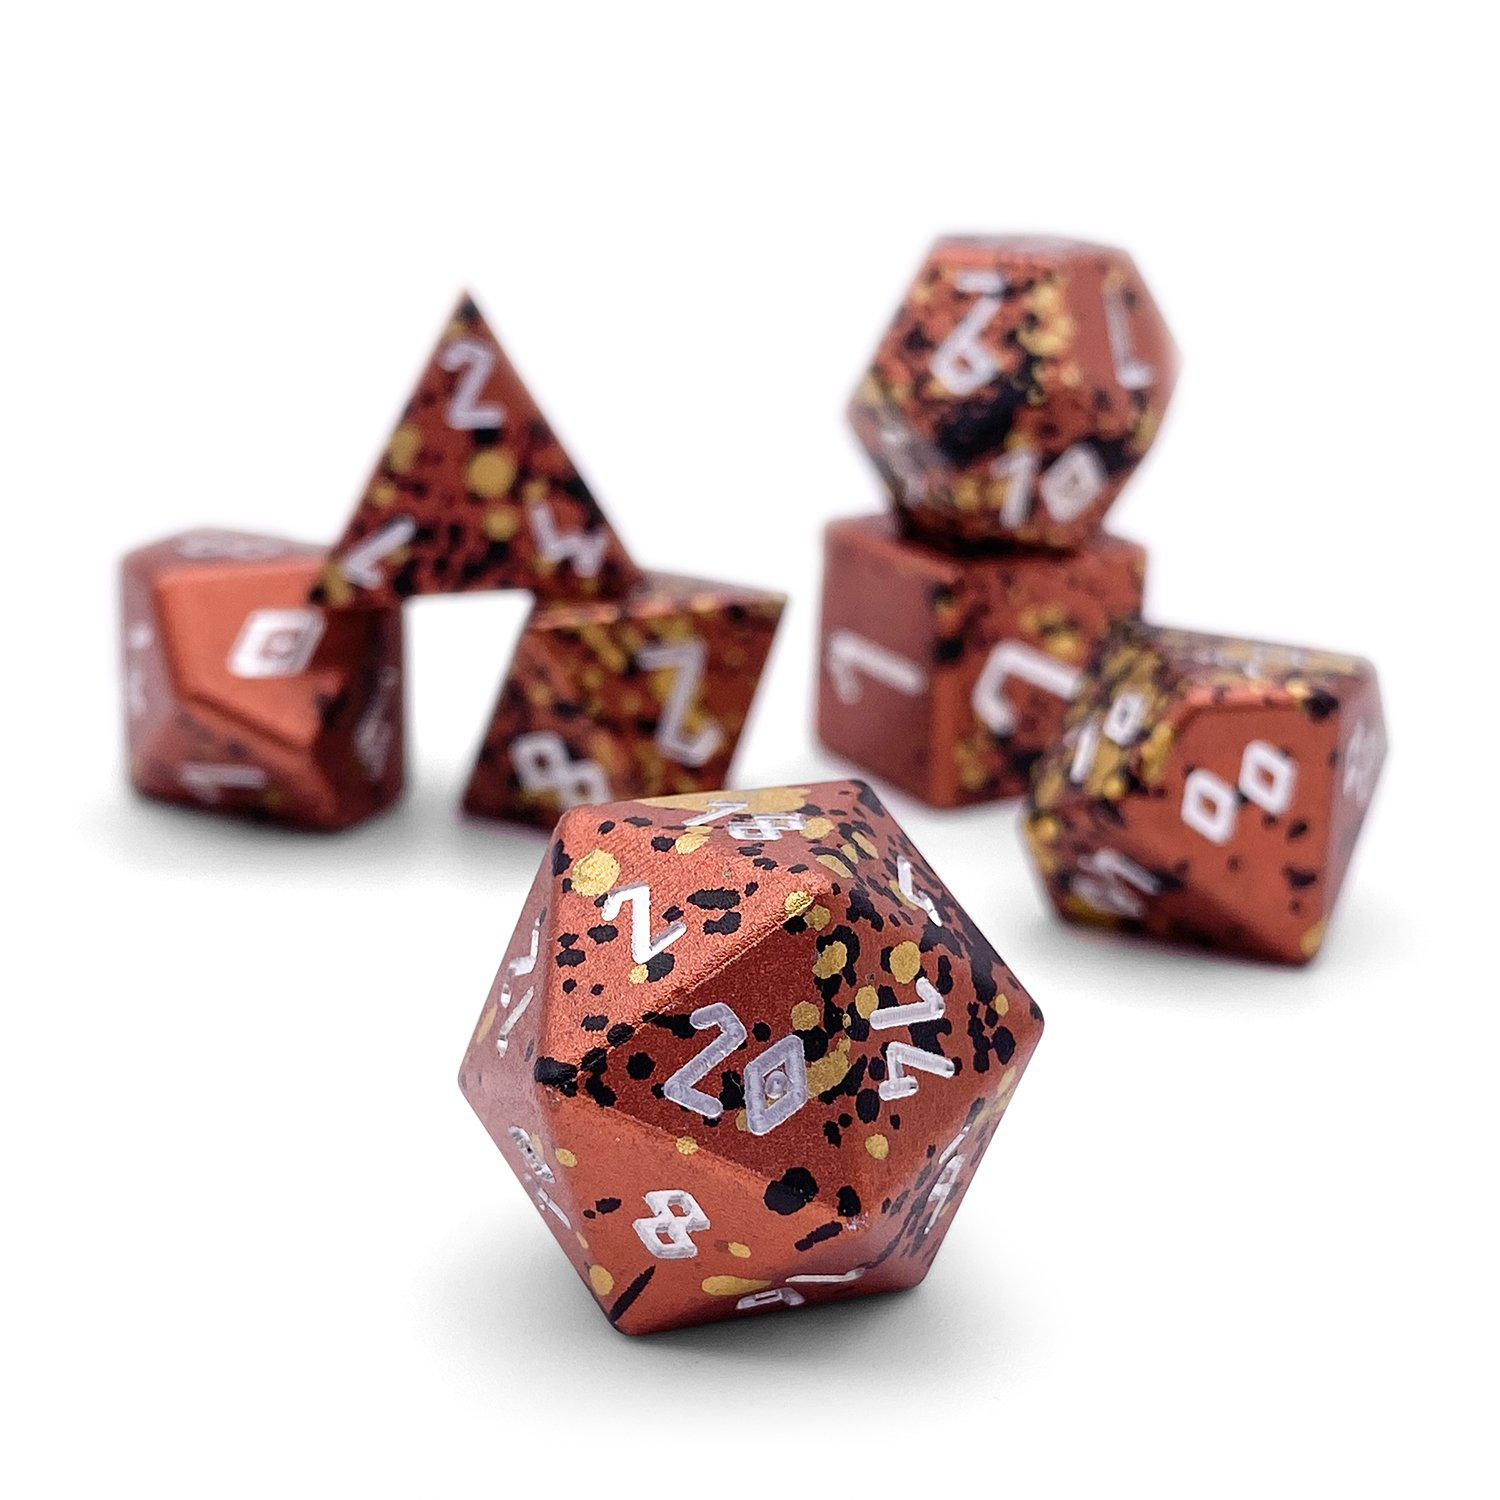 Fire Elemental - Wondrous Dice Set of 7 RPG Dice by Norse Foundry Precision Polyhedral Dice Set